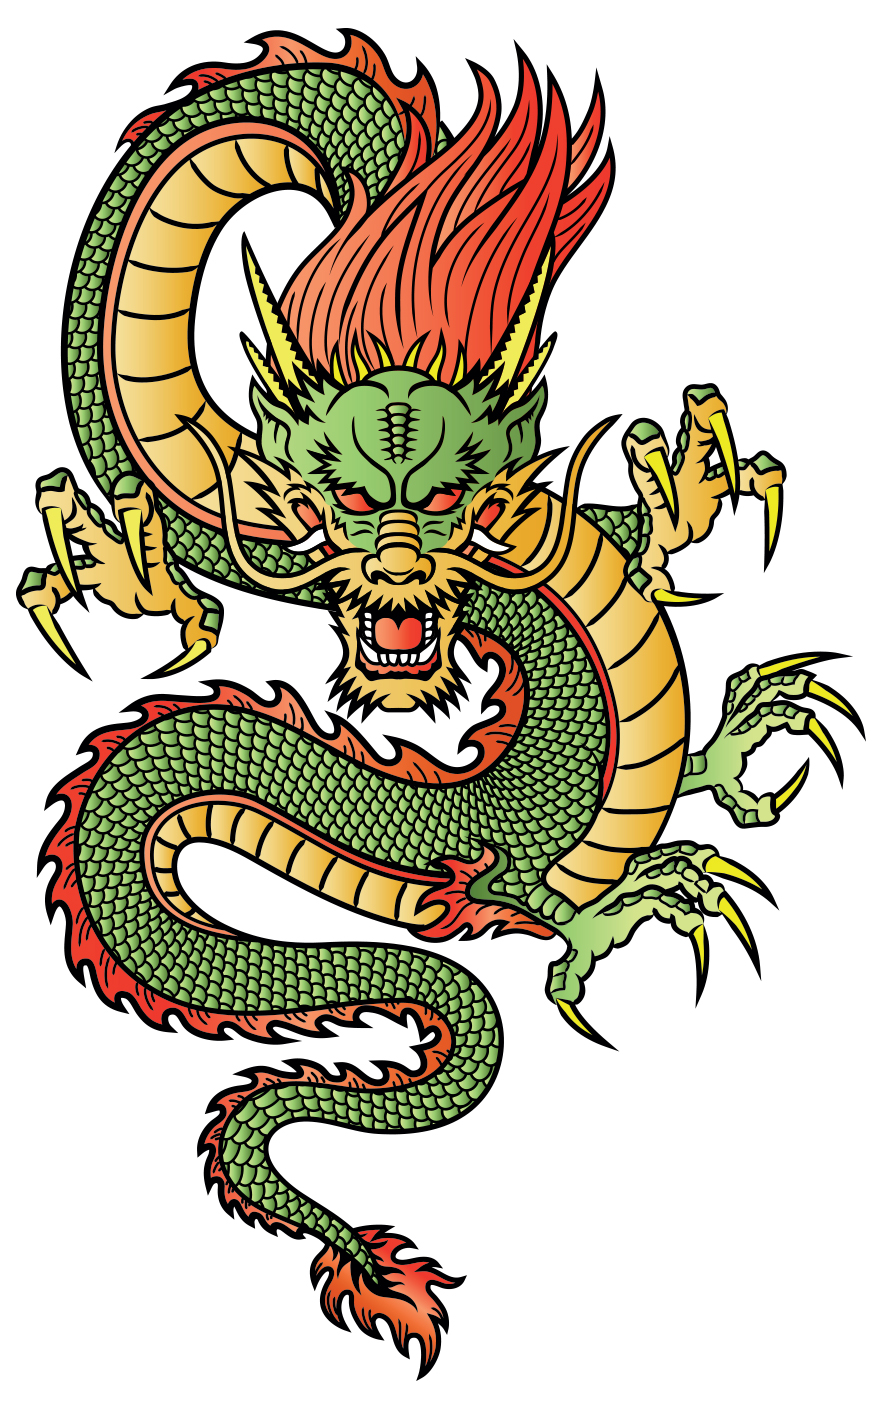 The Dragon's Head – ARCHETYPAL ASSETS